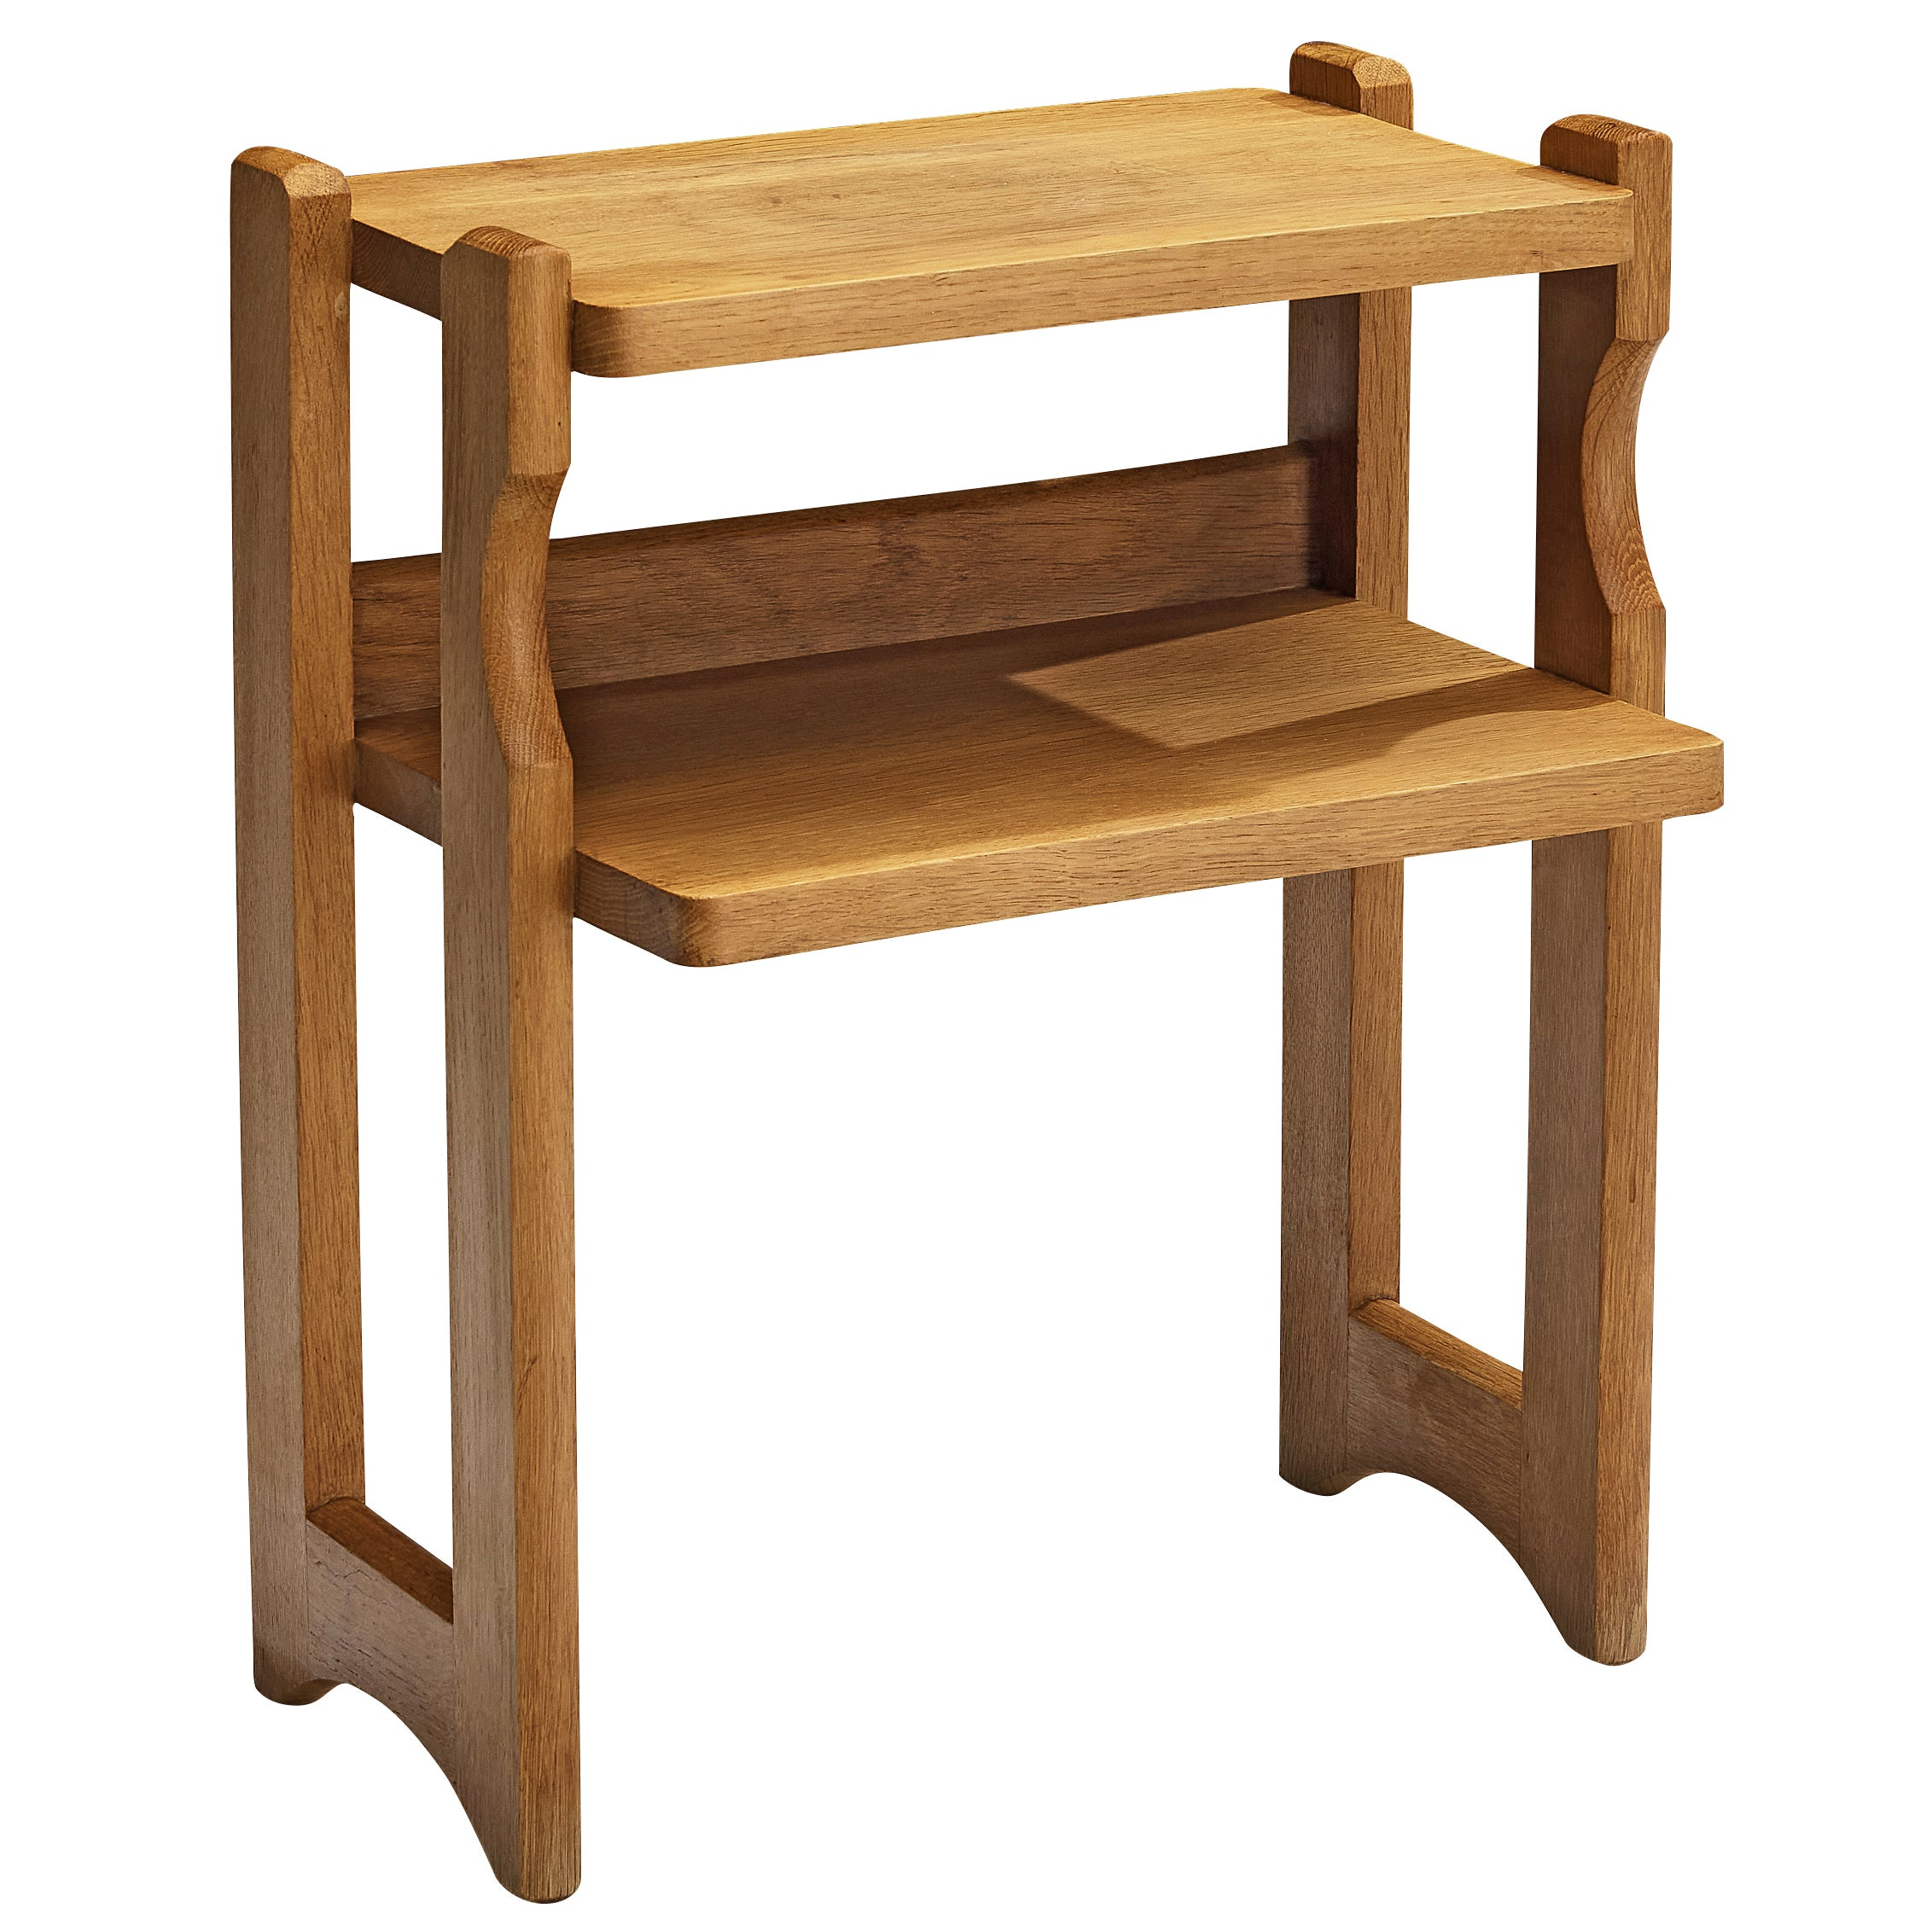 Guillerme et Chambron Small Side Table in Solid Oak